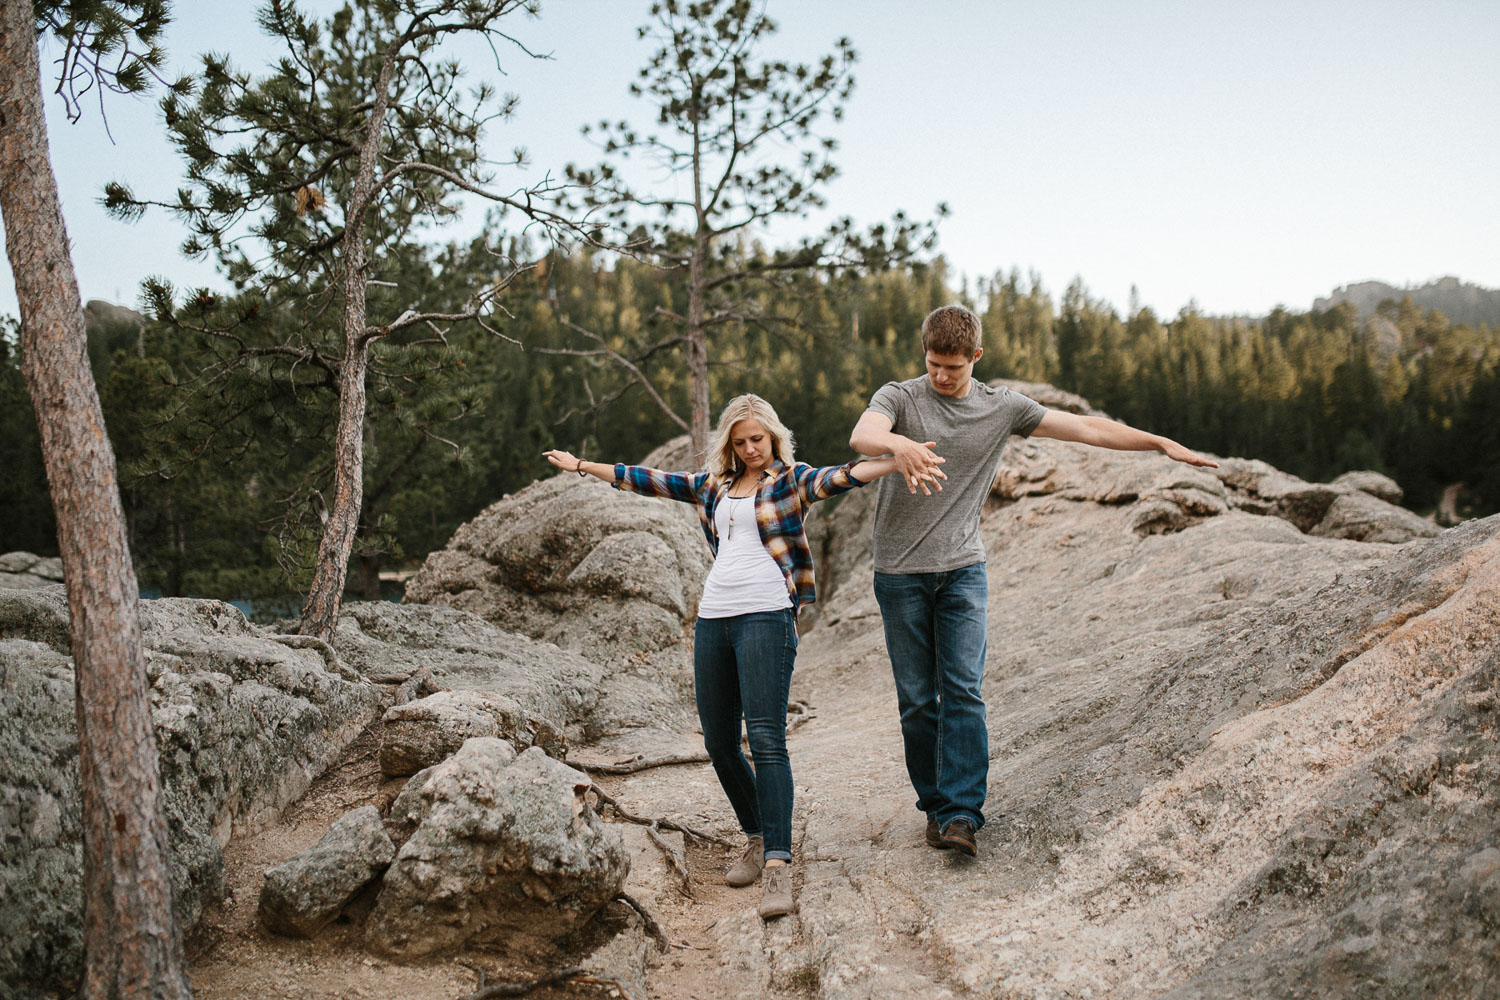 SiouxFalls_BlackHills_Adventure_Engagement_Wedding_Photographer_68.jpg